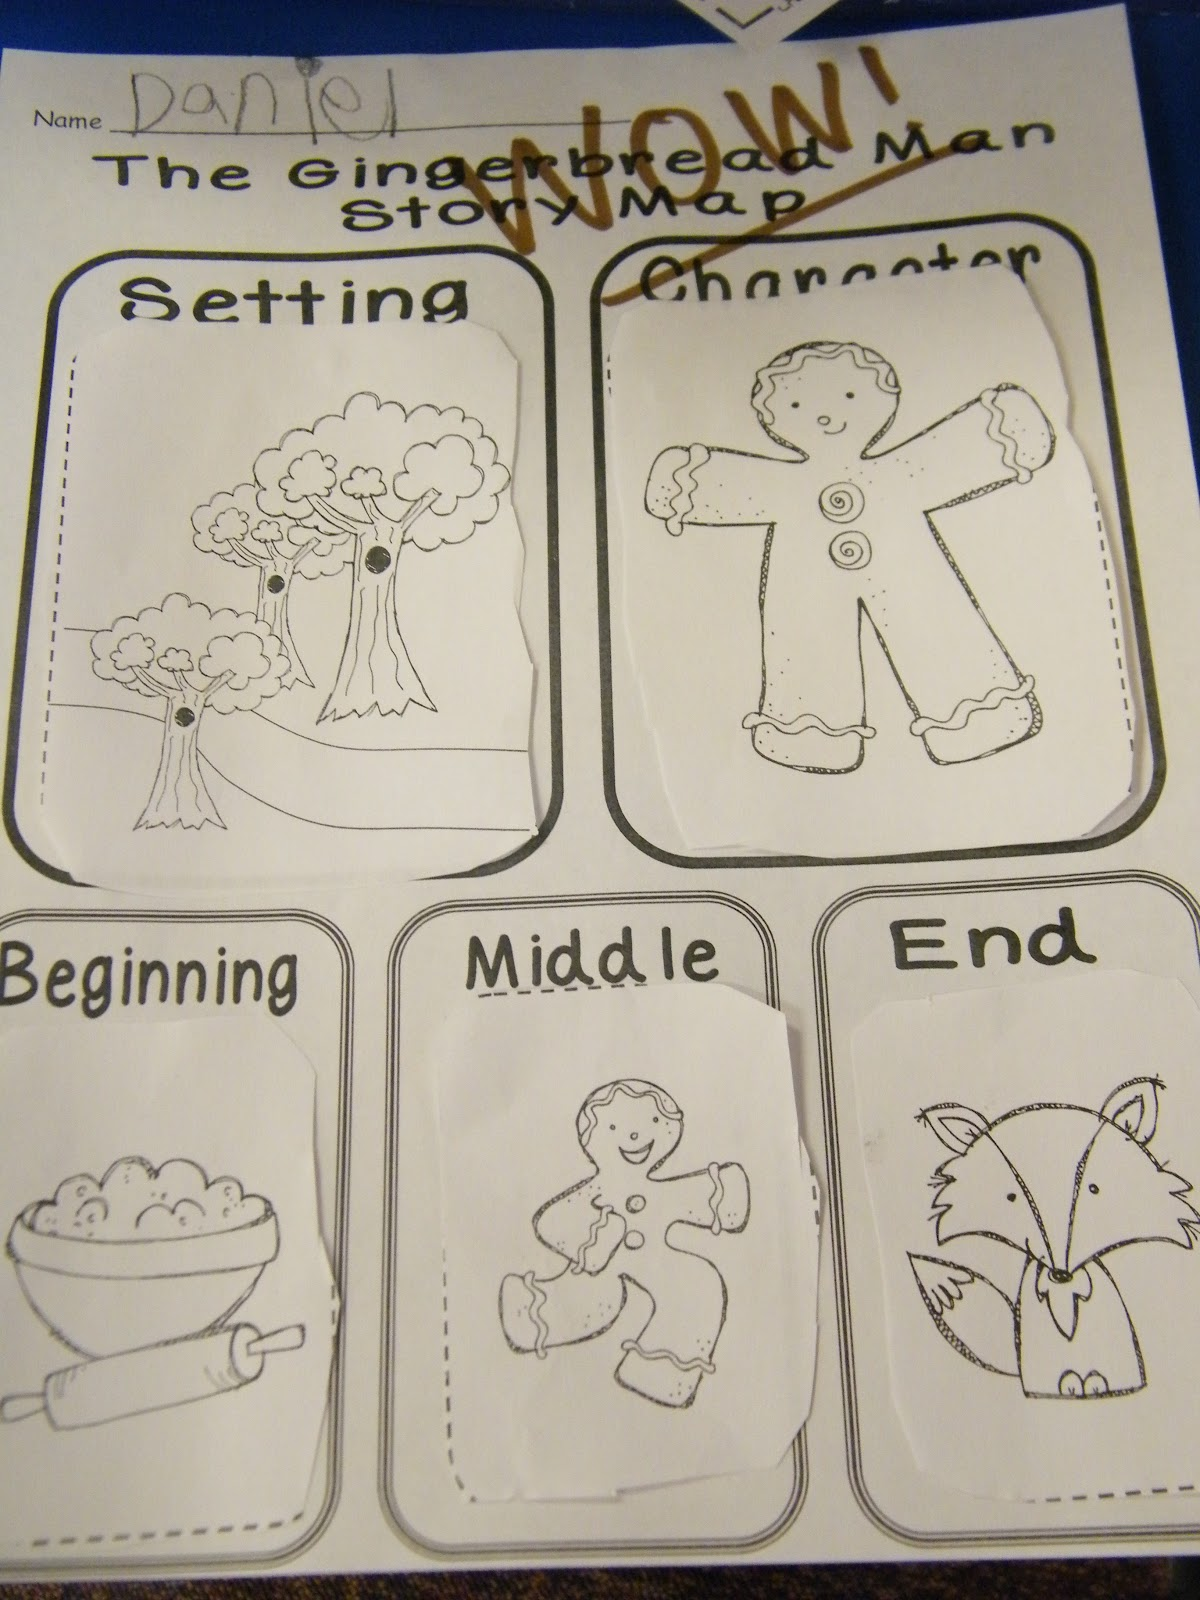 50 Playful Sight Words Activity Ideas For Beginning